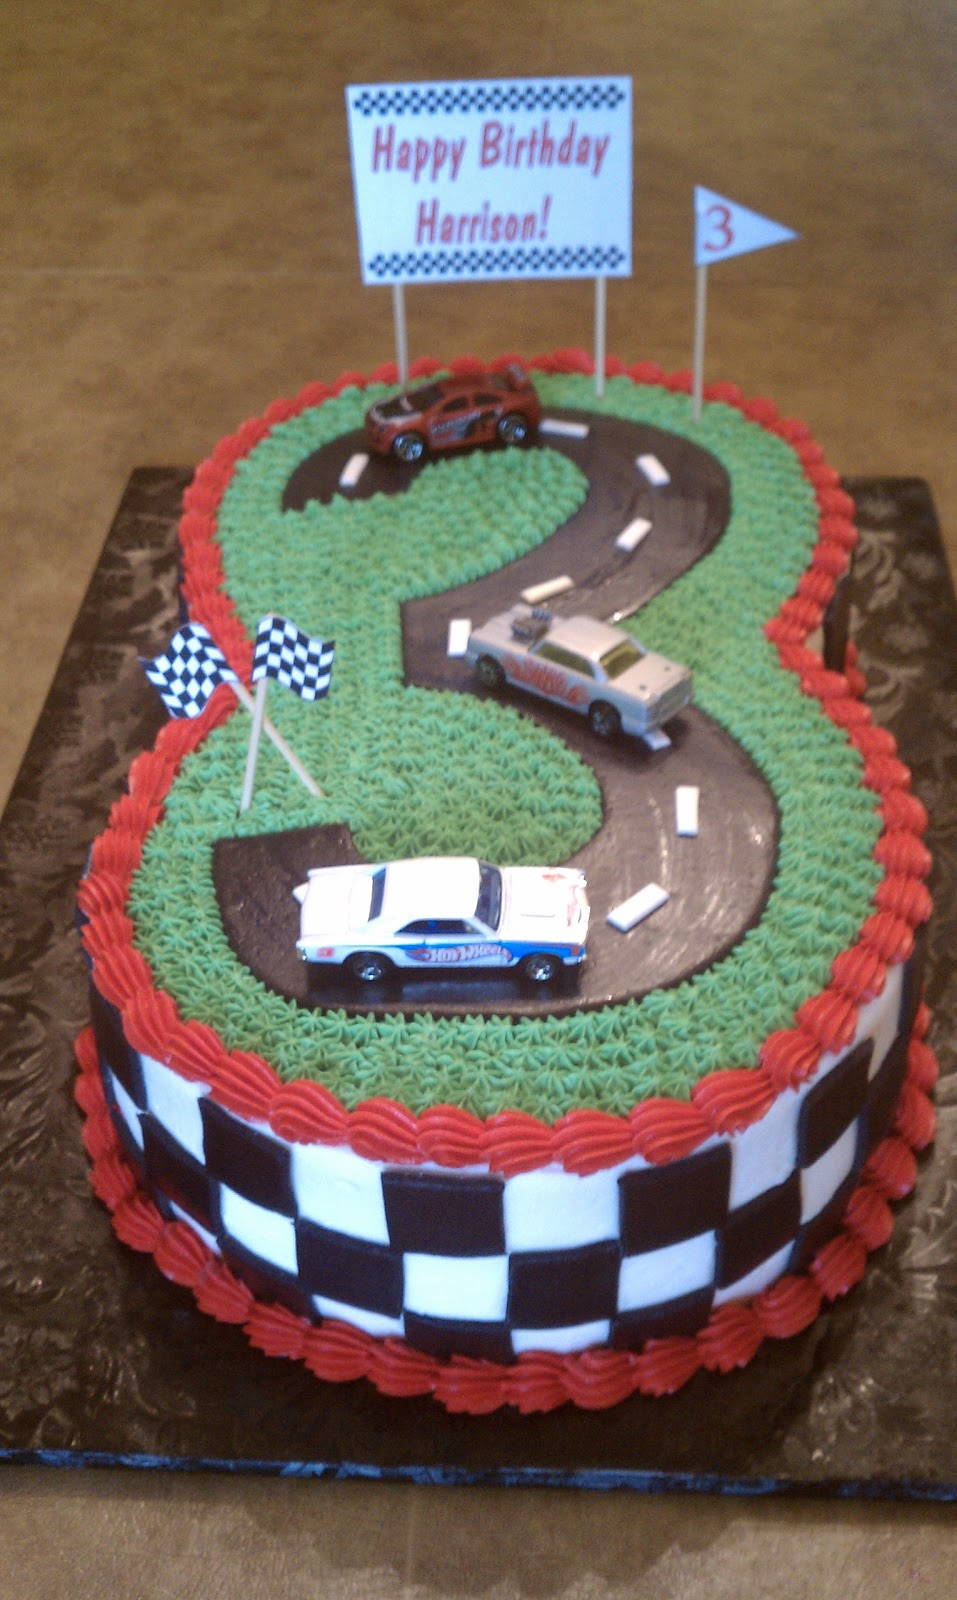 The Number 3 Racetrack And Checkboard Sides Are Homemade Rolled Fondant Signs Just Printed On Cardstock Not Edible In Other Words